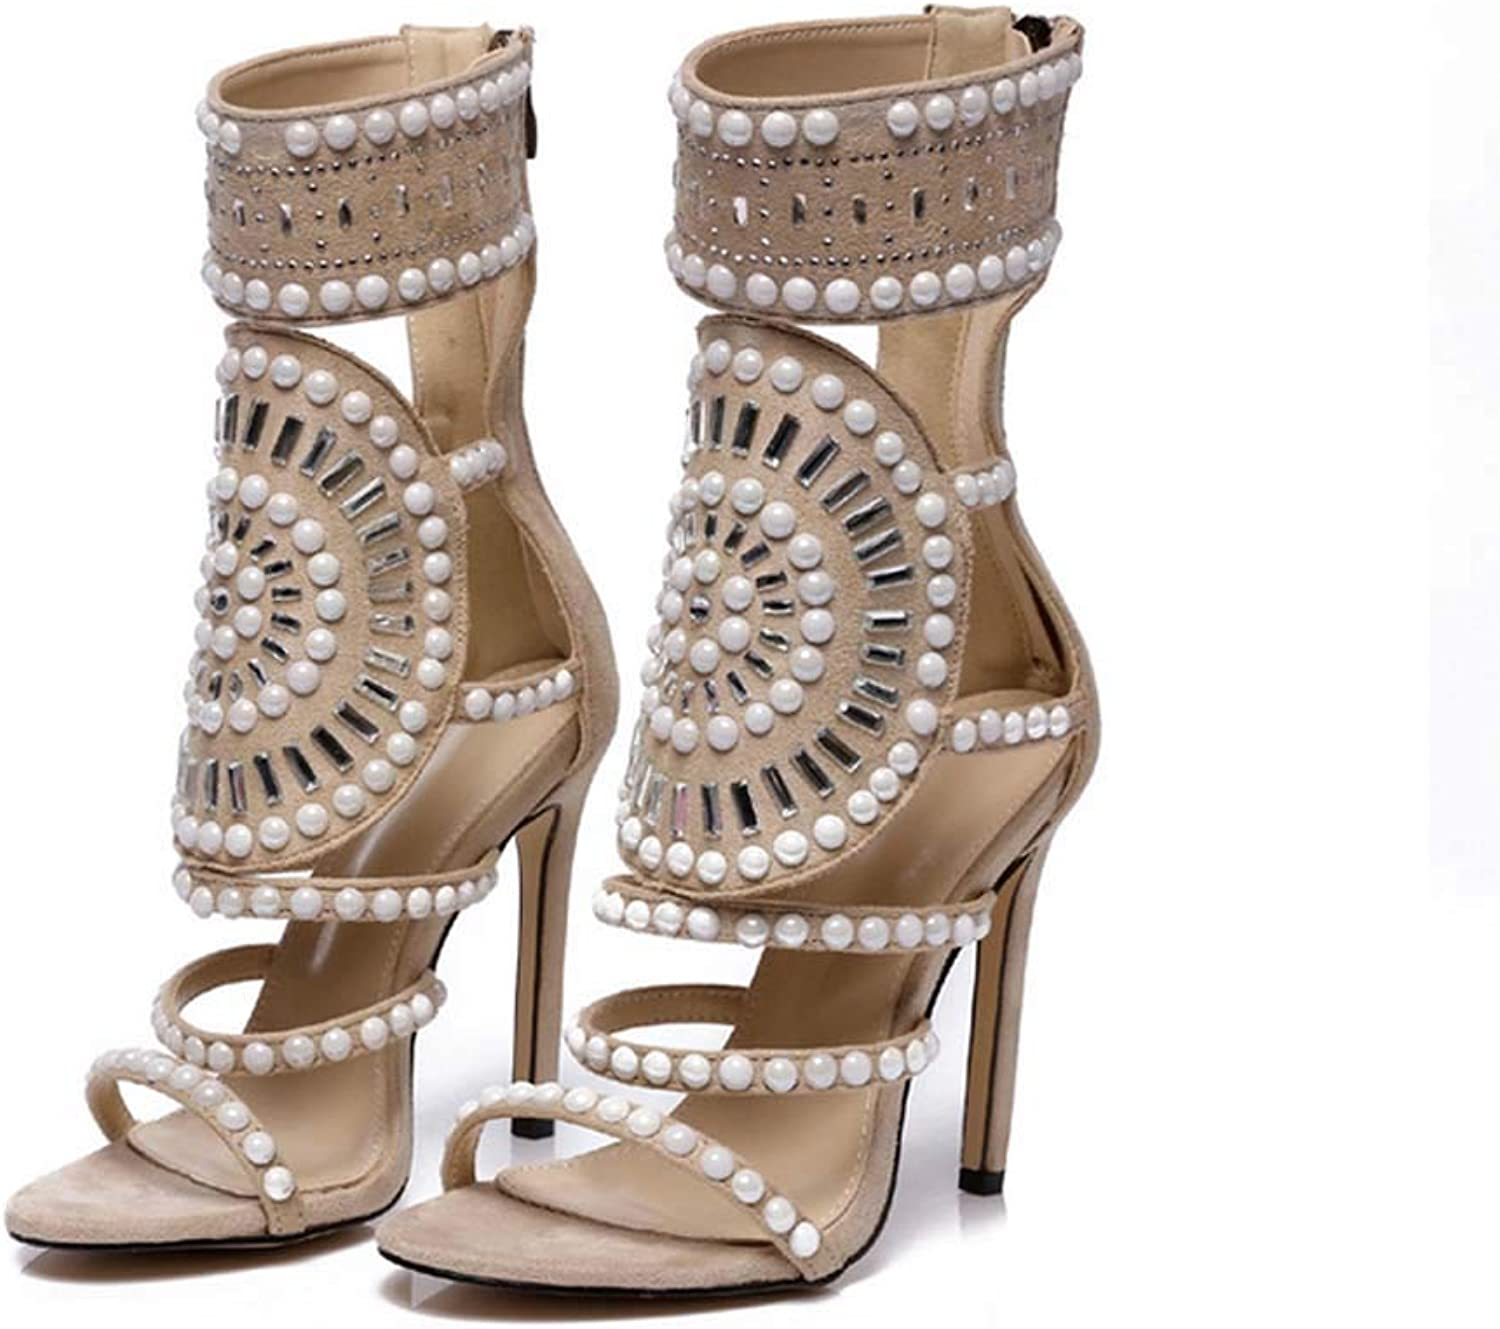 Women Embellished Sparkly Open Toe High Heel Ankle Strap Rhinestone Sandals for Women